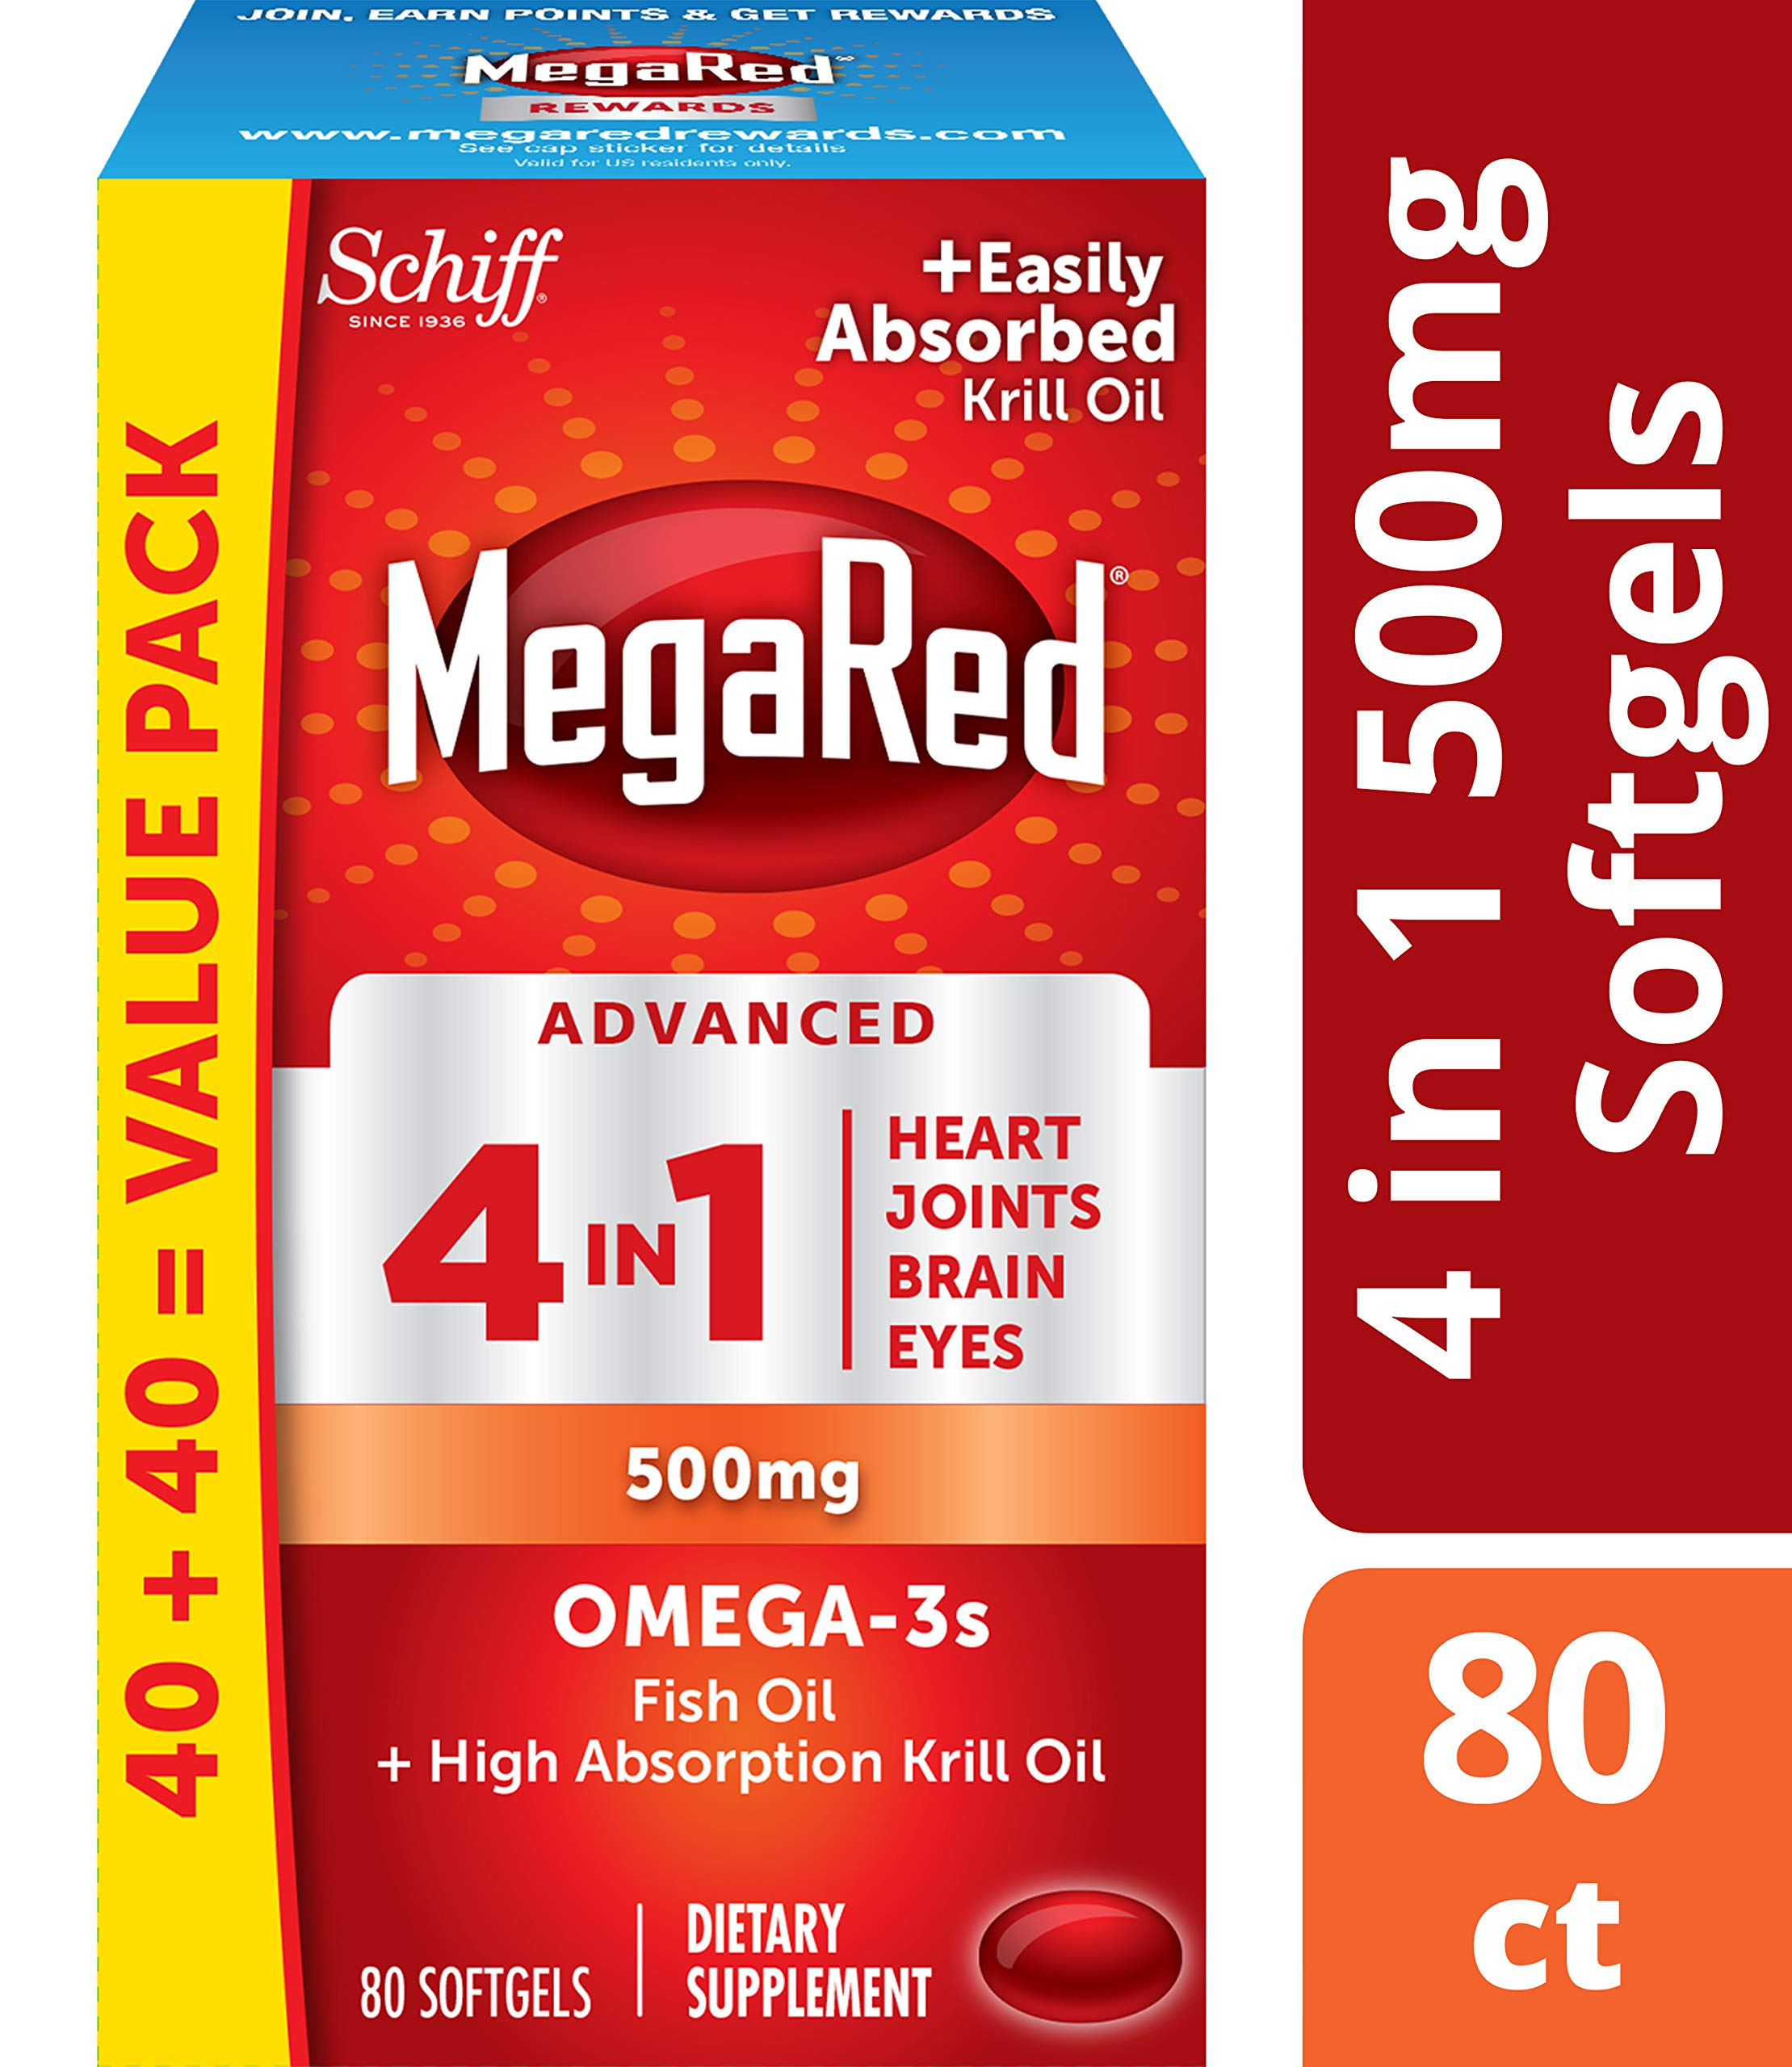 Omega-3 Fish Oil + High Absorption Krill Oil 500mg Softgels, MegaRed Advanced 4in1 (80 count in a bottle), Concentrated Omega-3 Fish & Krill Oil Supplement by Megared